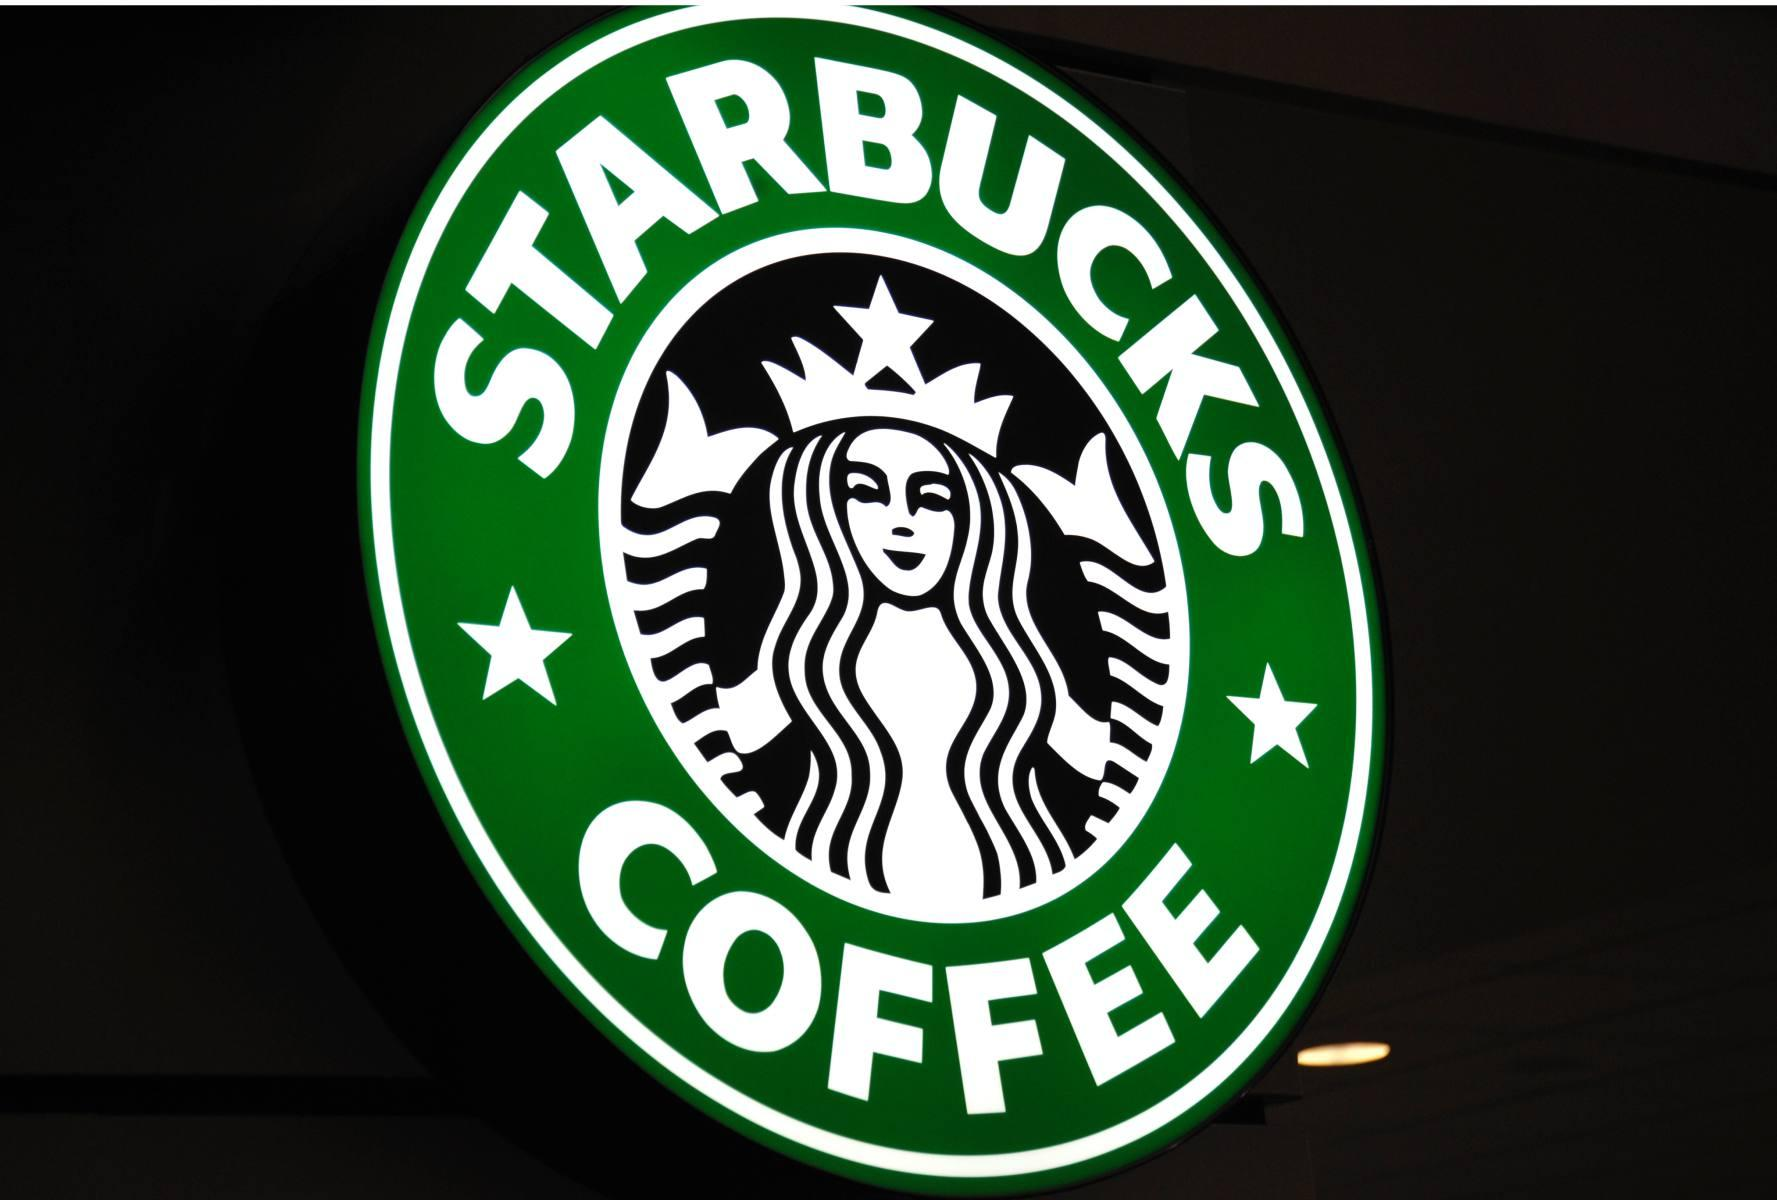 Nestle pays US $7.15 billion to sell Starbucks products